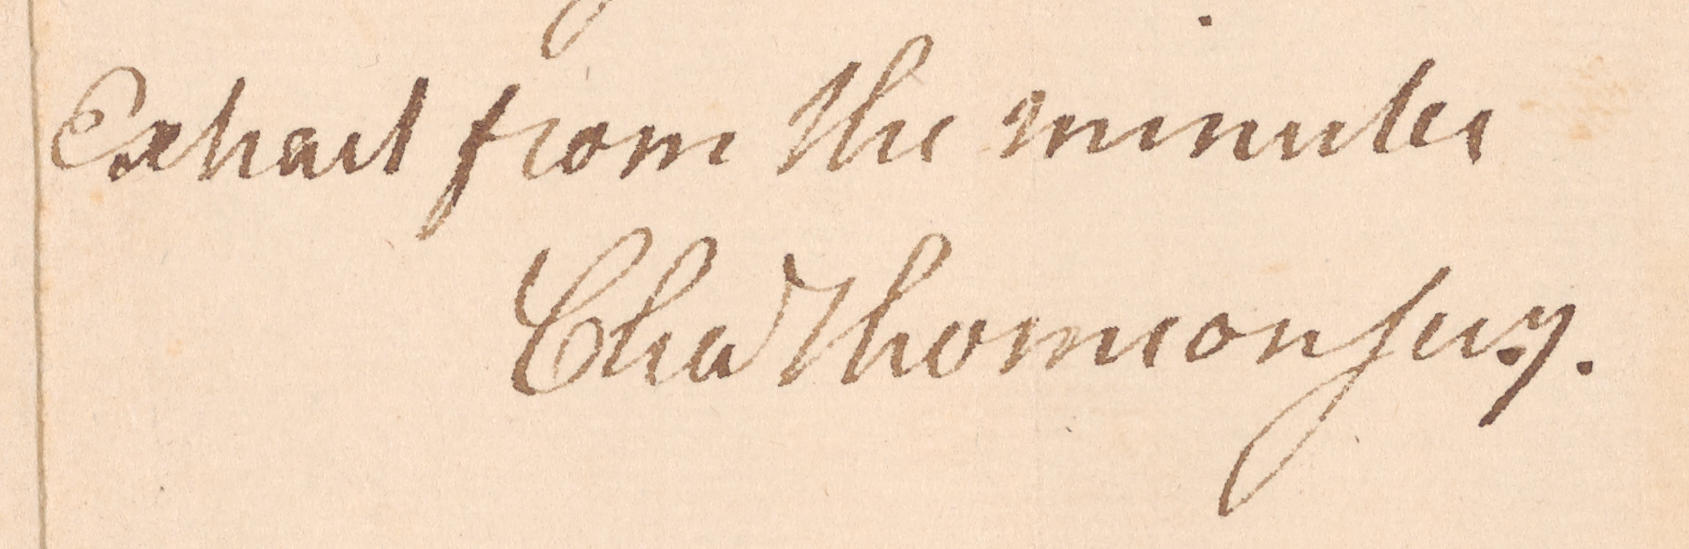 Detail from 1776 Resolution Signed by Charles Thomson, NYPL